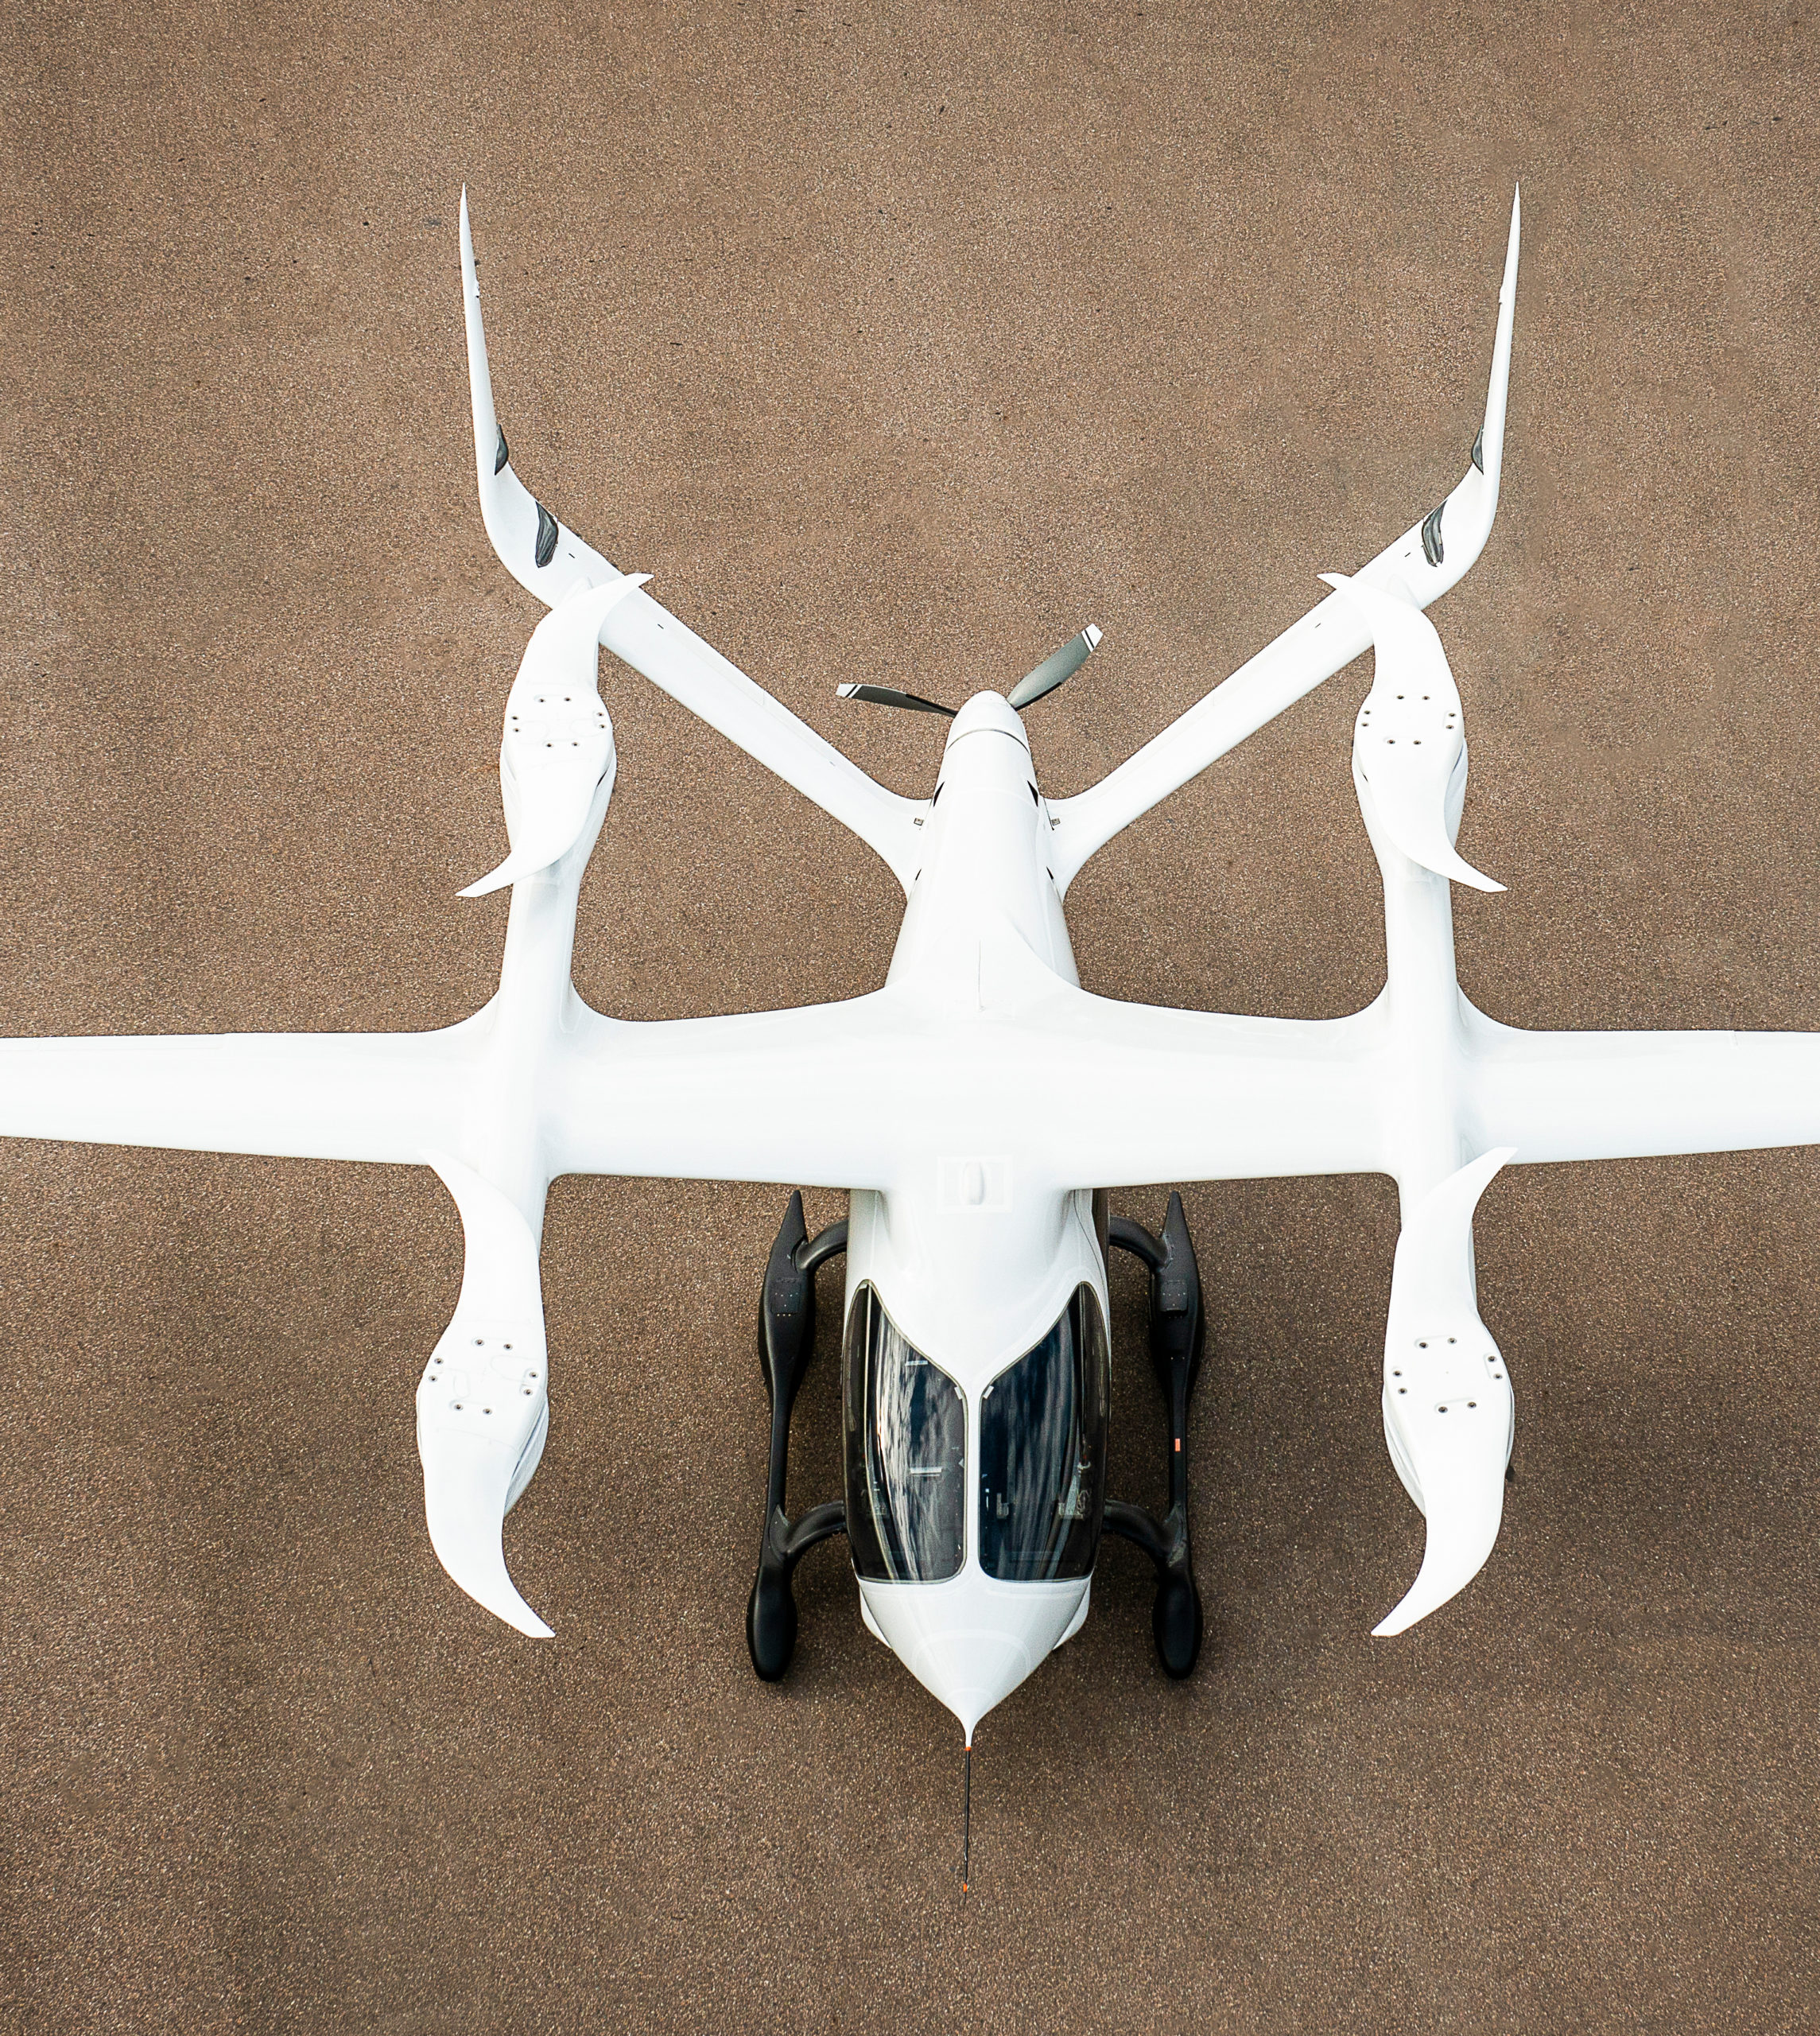 CAE partners with Beta Technologies for eVTOL pilot and maintenance training